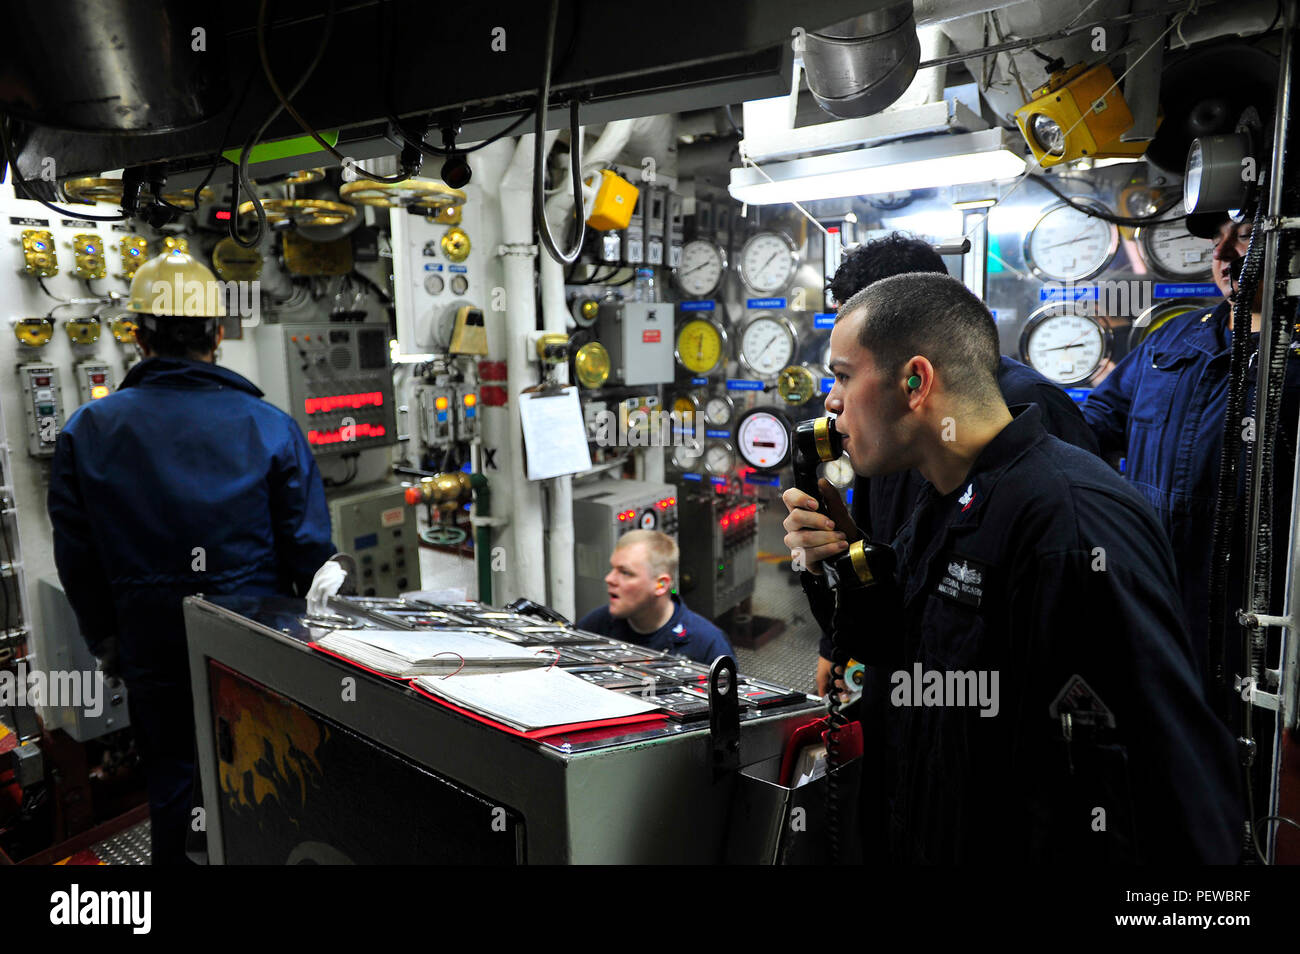 https www alamy com 160204 n yl053 057 yokosuka japan feb 4 2016 machinists mate 2nd class ricardo medina right attached to the us 7th fleet flagship uss blue ridge lcc 19 passes a message to sailors in the upper deck of the fireroom in preparation for lighting the ships boilers blue ridge is currently moored at commander fleet activities yokosuka finishing the final preparations for its 2016 patrol cycle us navy photo by mass communication specialist 3rd class don patton released image215687683 html